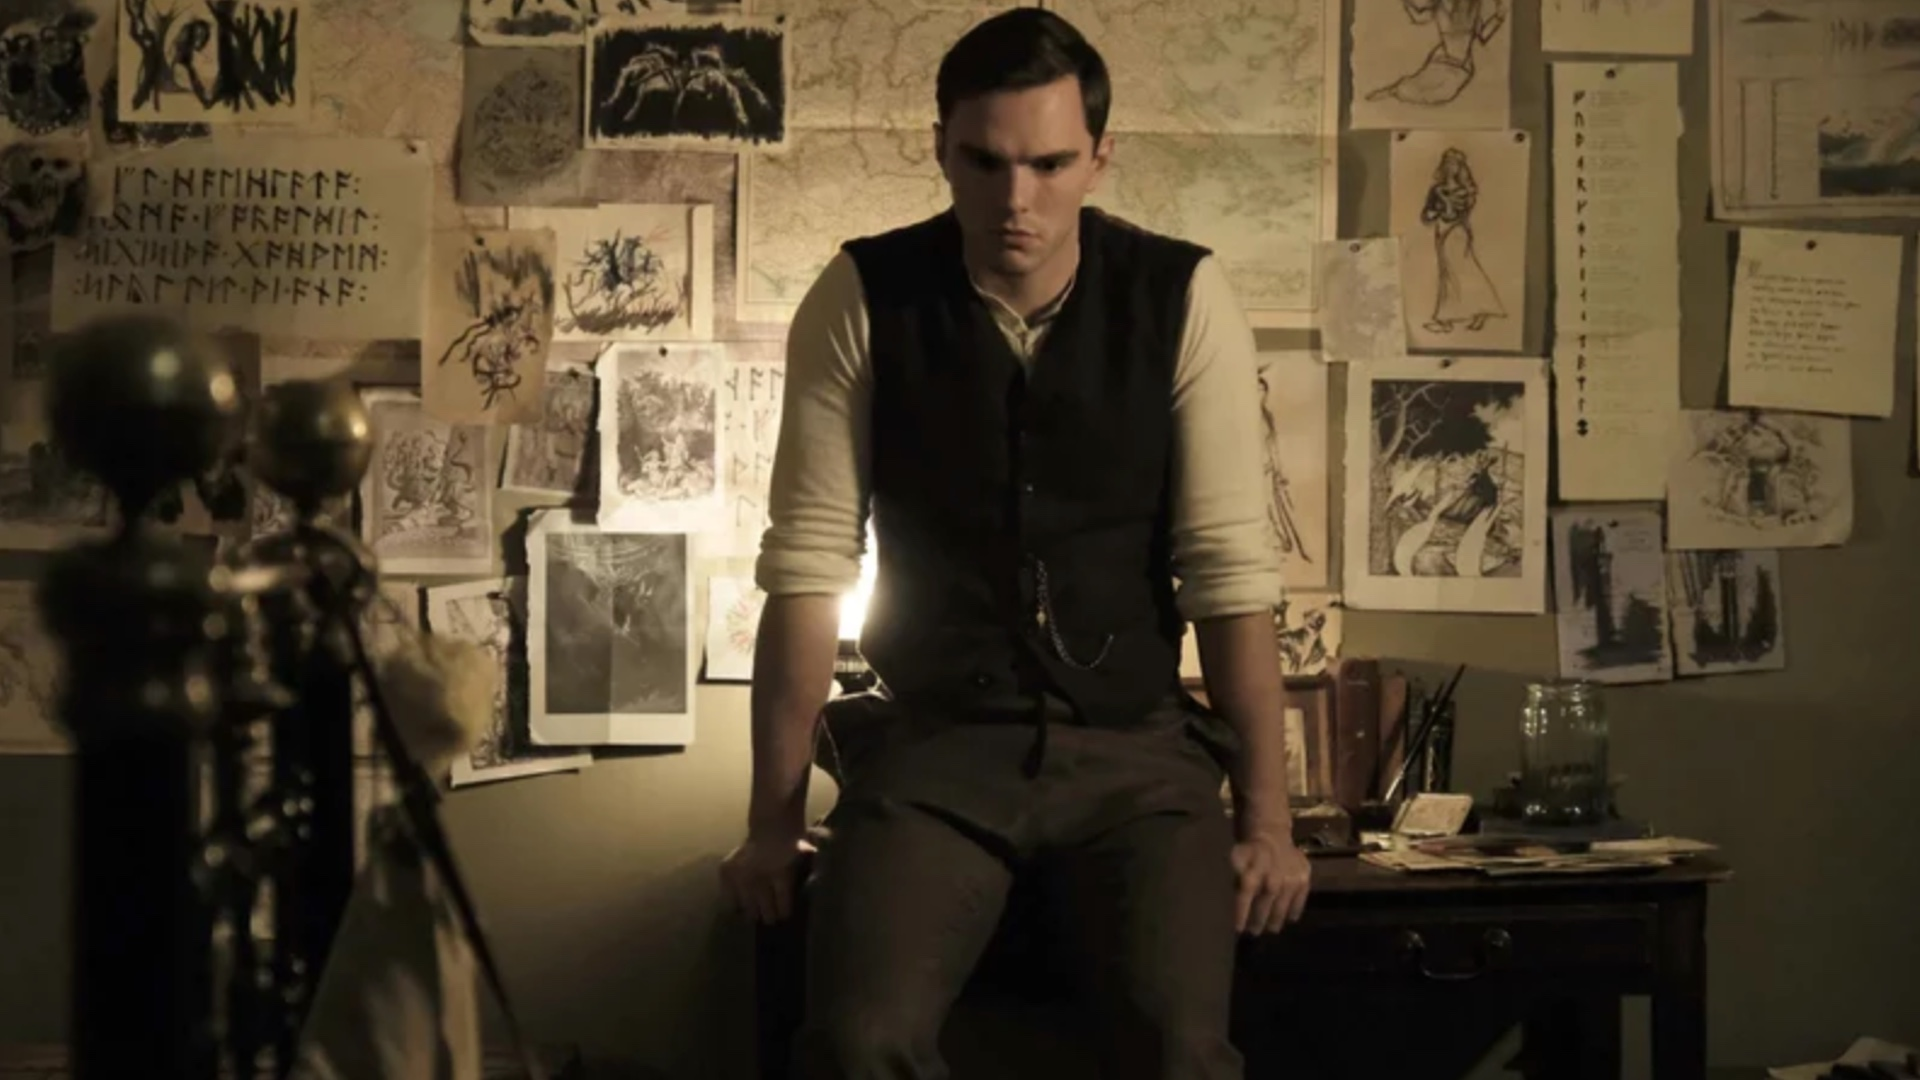 first-photos-of-nicholas-hoult-as-a-young-jrr-tolkien-in-the-upcoming-biopic-tolkien-social.jpg